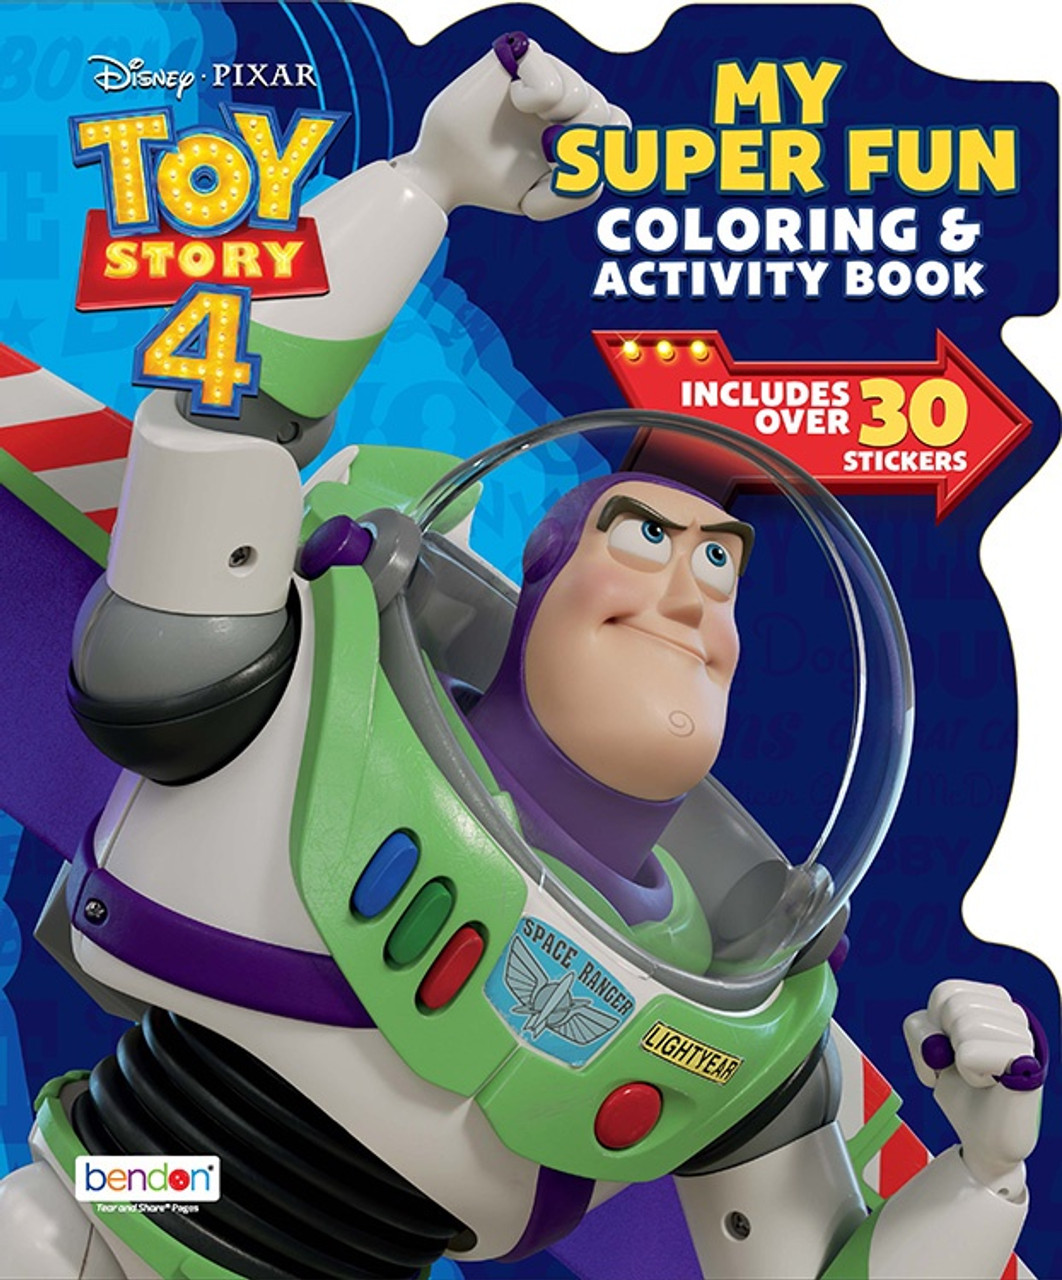 TOY STORY 4 COLORING & ACTIVITY BOOK